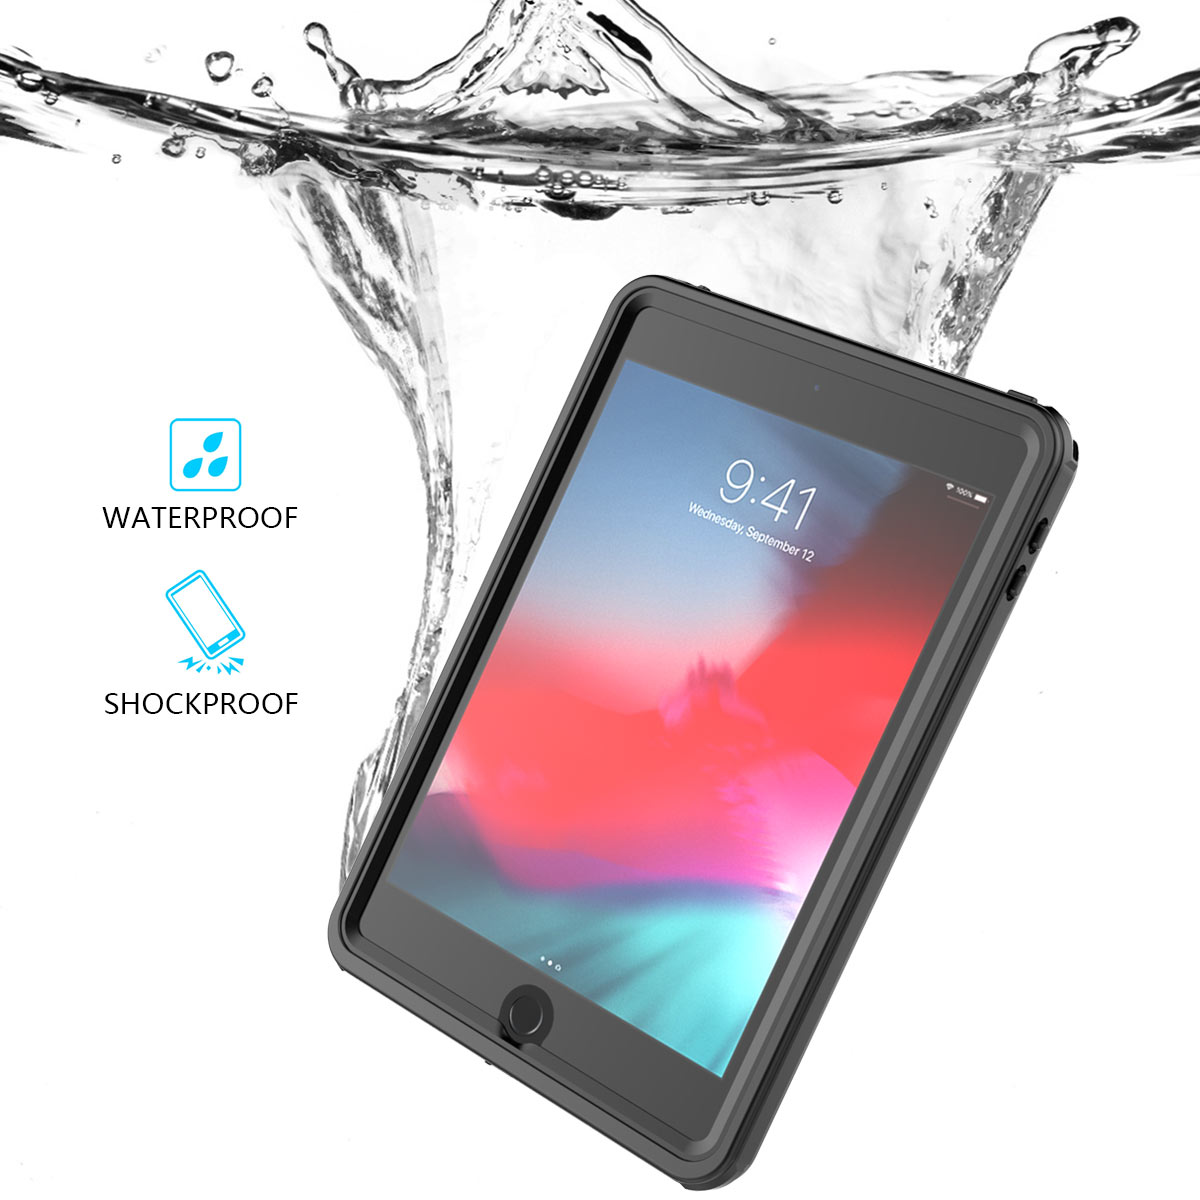 IP68 Waterproof Case For iPad Mini 5 2019 Case Anti-Scratch Full Screen Protector Shockproof Cover For New iPad Mini 5 Case 7.9IP68 Waterproof Case For iPad Mini 5 2019 Case Anti-Scratch Full Screen Protector Shockproof Cover For New iPad Mini 5 Case 7.9